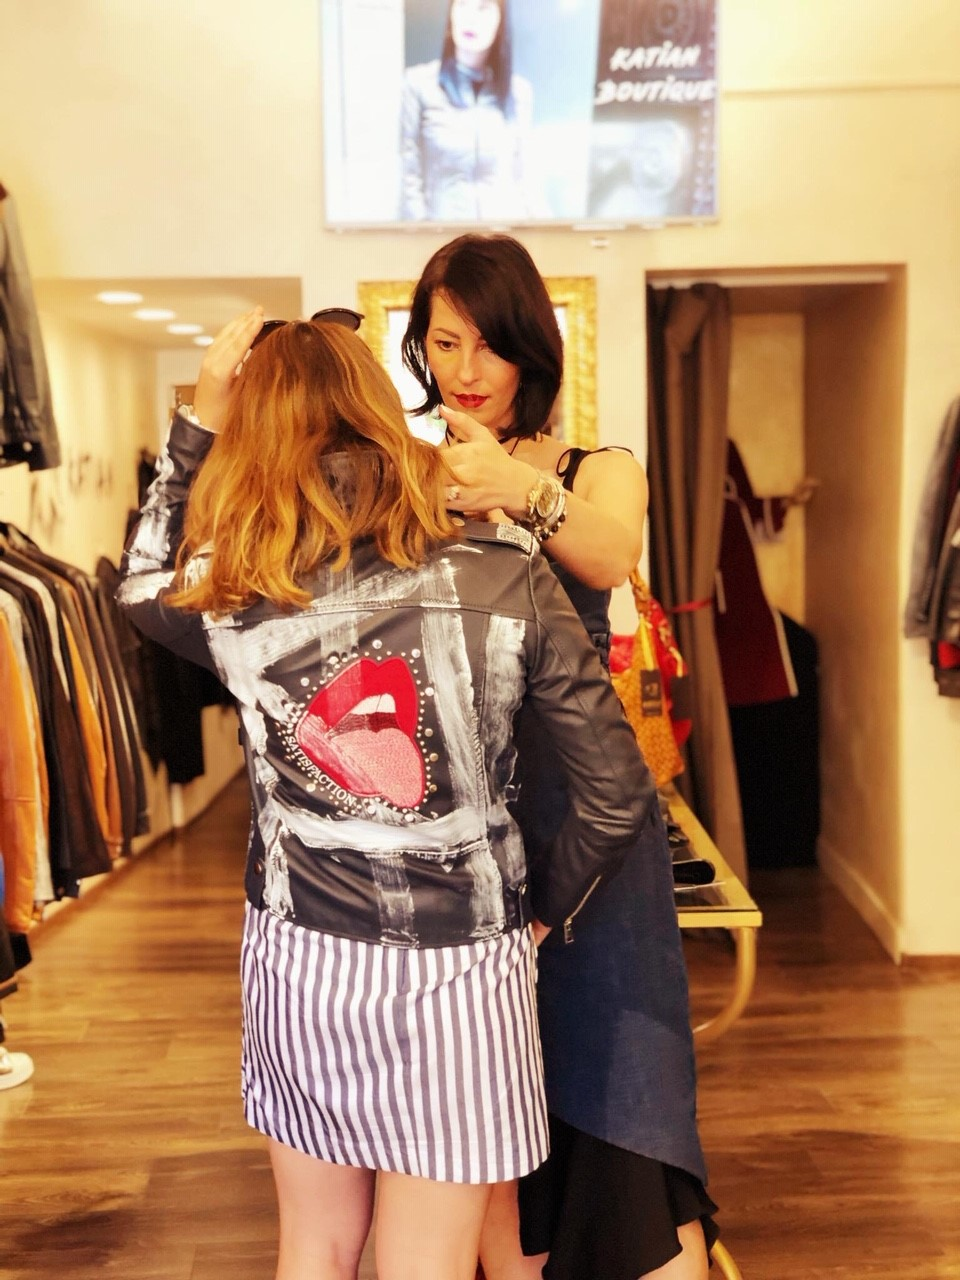 Black Jacket with red lips.jpg